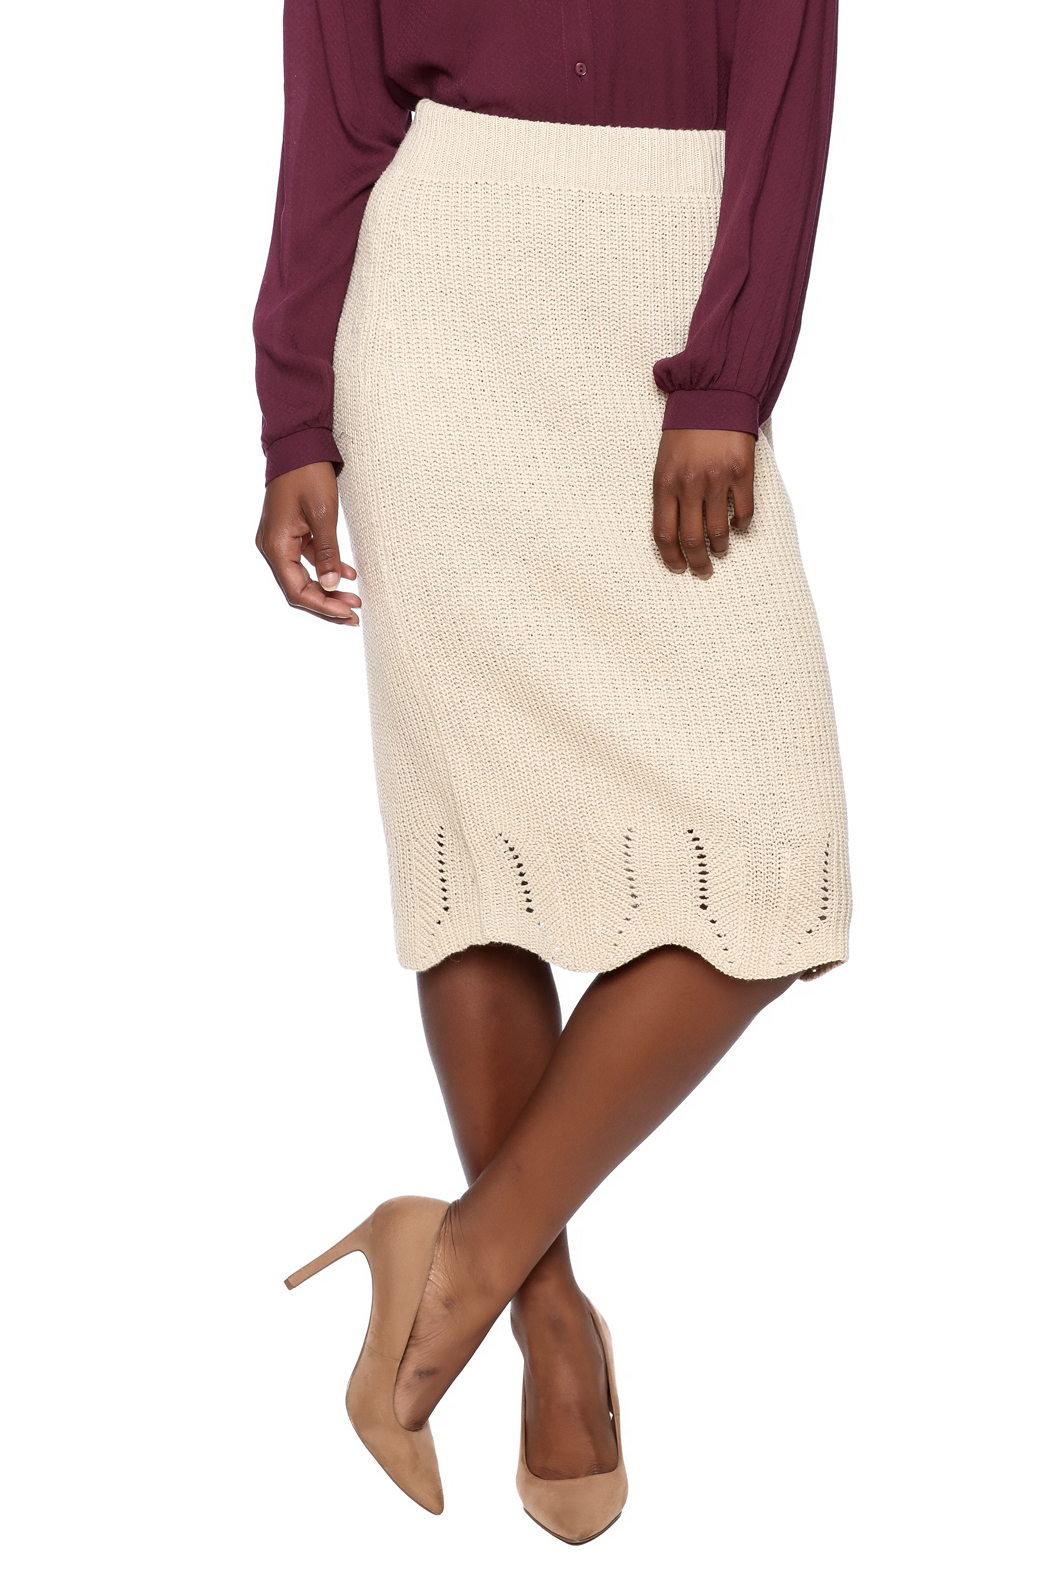 e3e0bb5eeb71 LoveRiche Knit Skirt from Miami by Leah & Pearl — Shoptiques